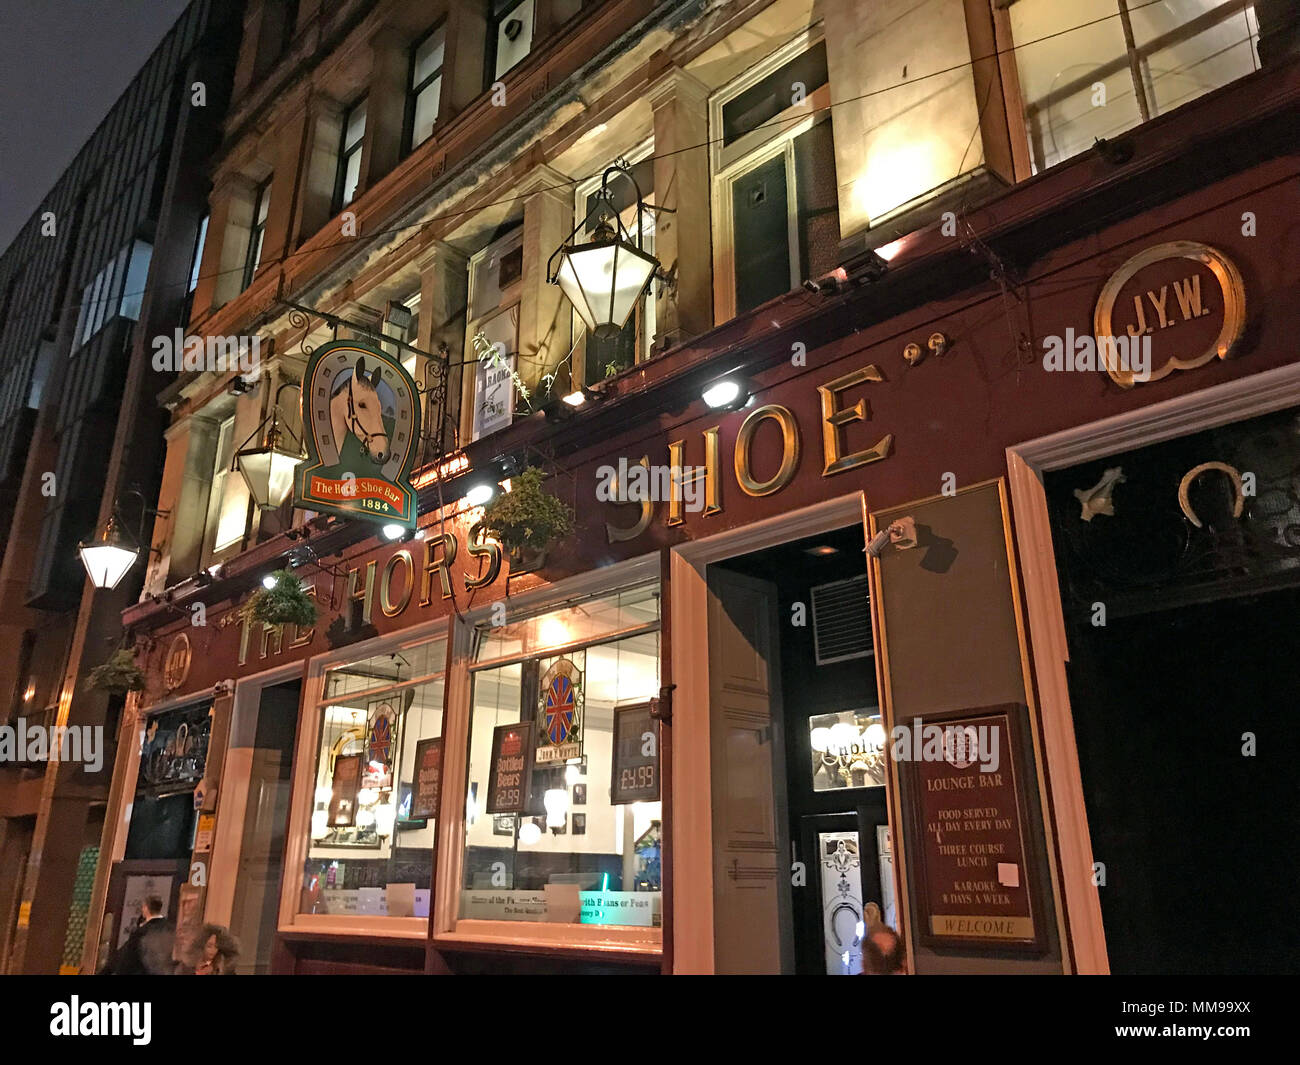 The Horse Shoe Bar, 24 Drury St, Glasgow, Scotland UK - Stock Image